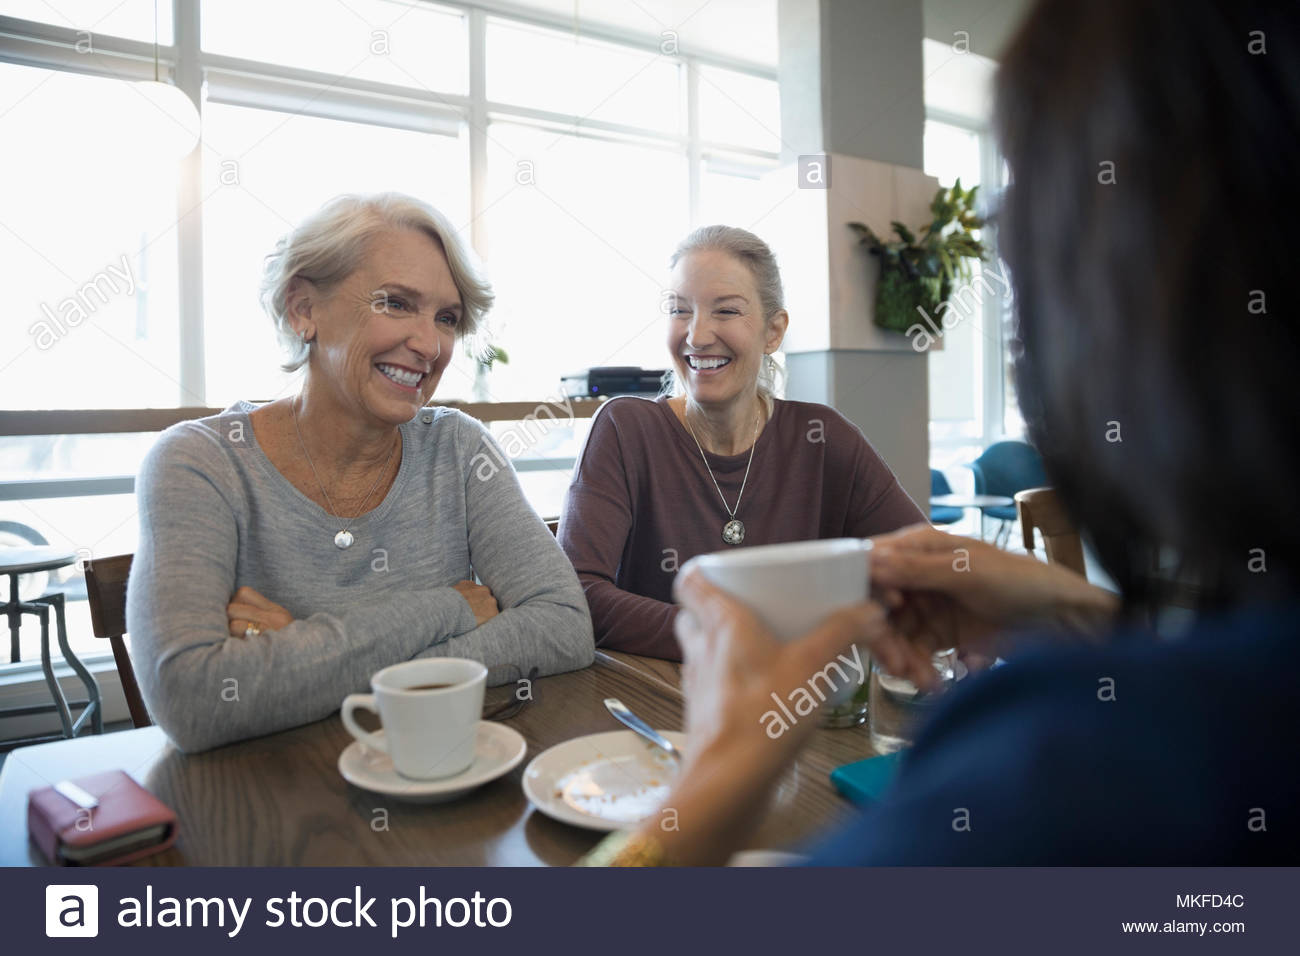 Smiling active senior woman friends talking and drinking coffee in cafe - Stock Image